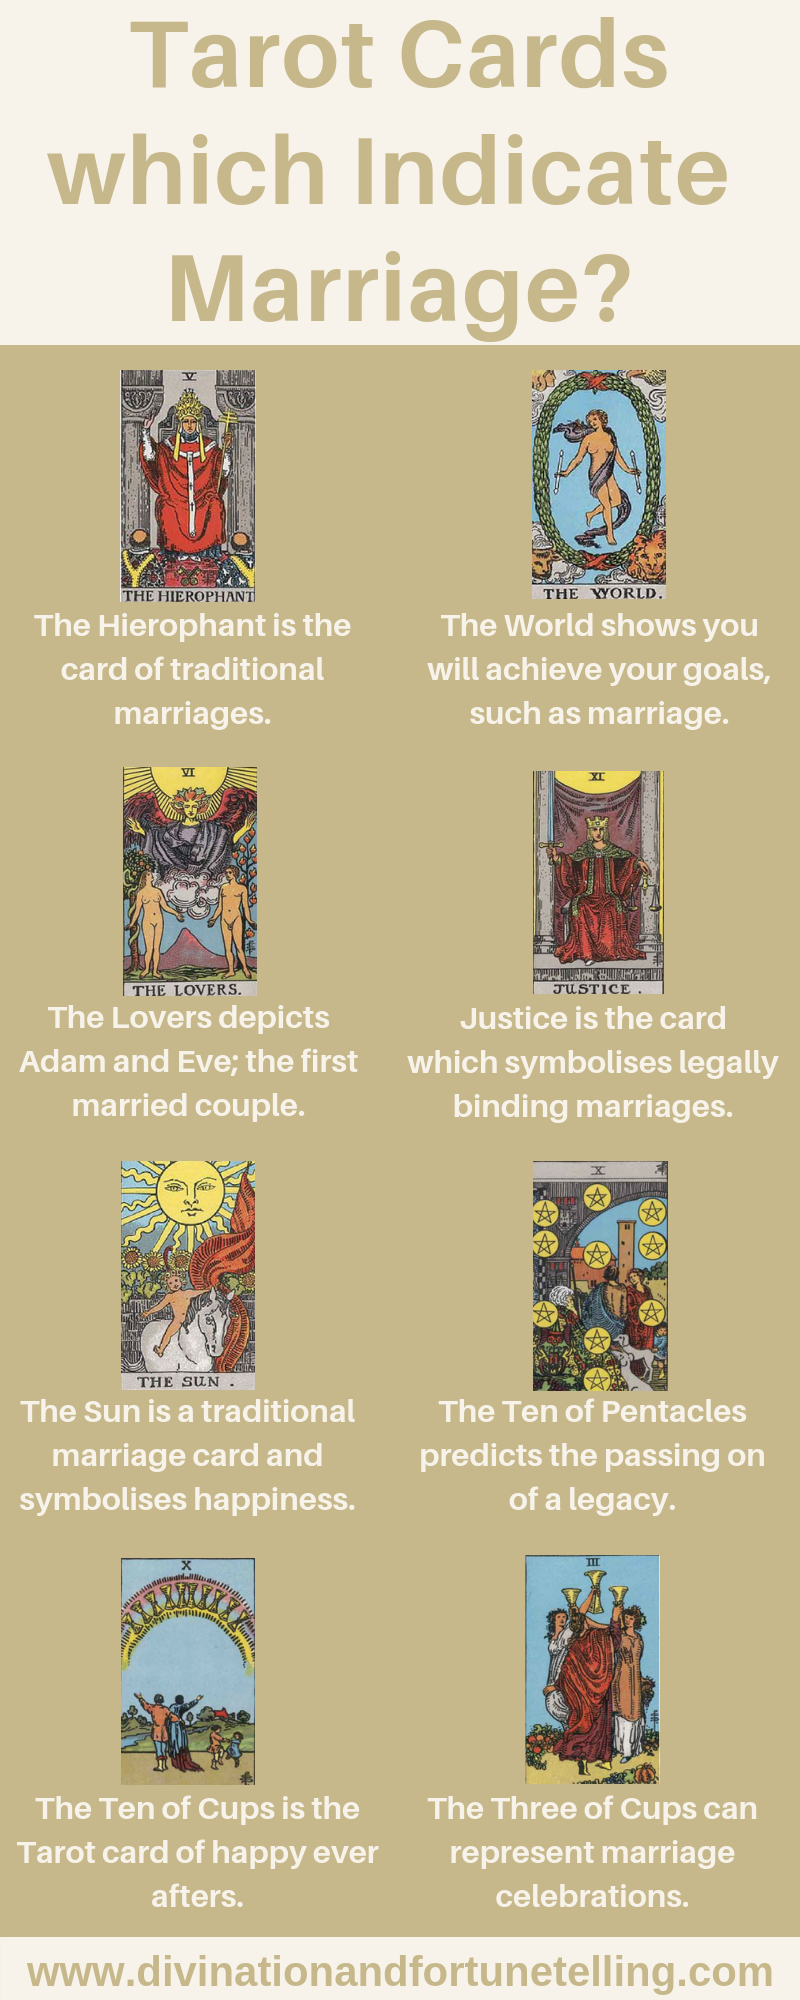 Art Illustrations: Which Tarot cards are indicators of marriage? What are the best cards which predict that you will marry your partner? Which Tarot cards represent major commitments such as engagements or legal marriages? - Card deck is the Rider Waite Smith.